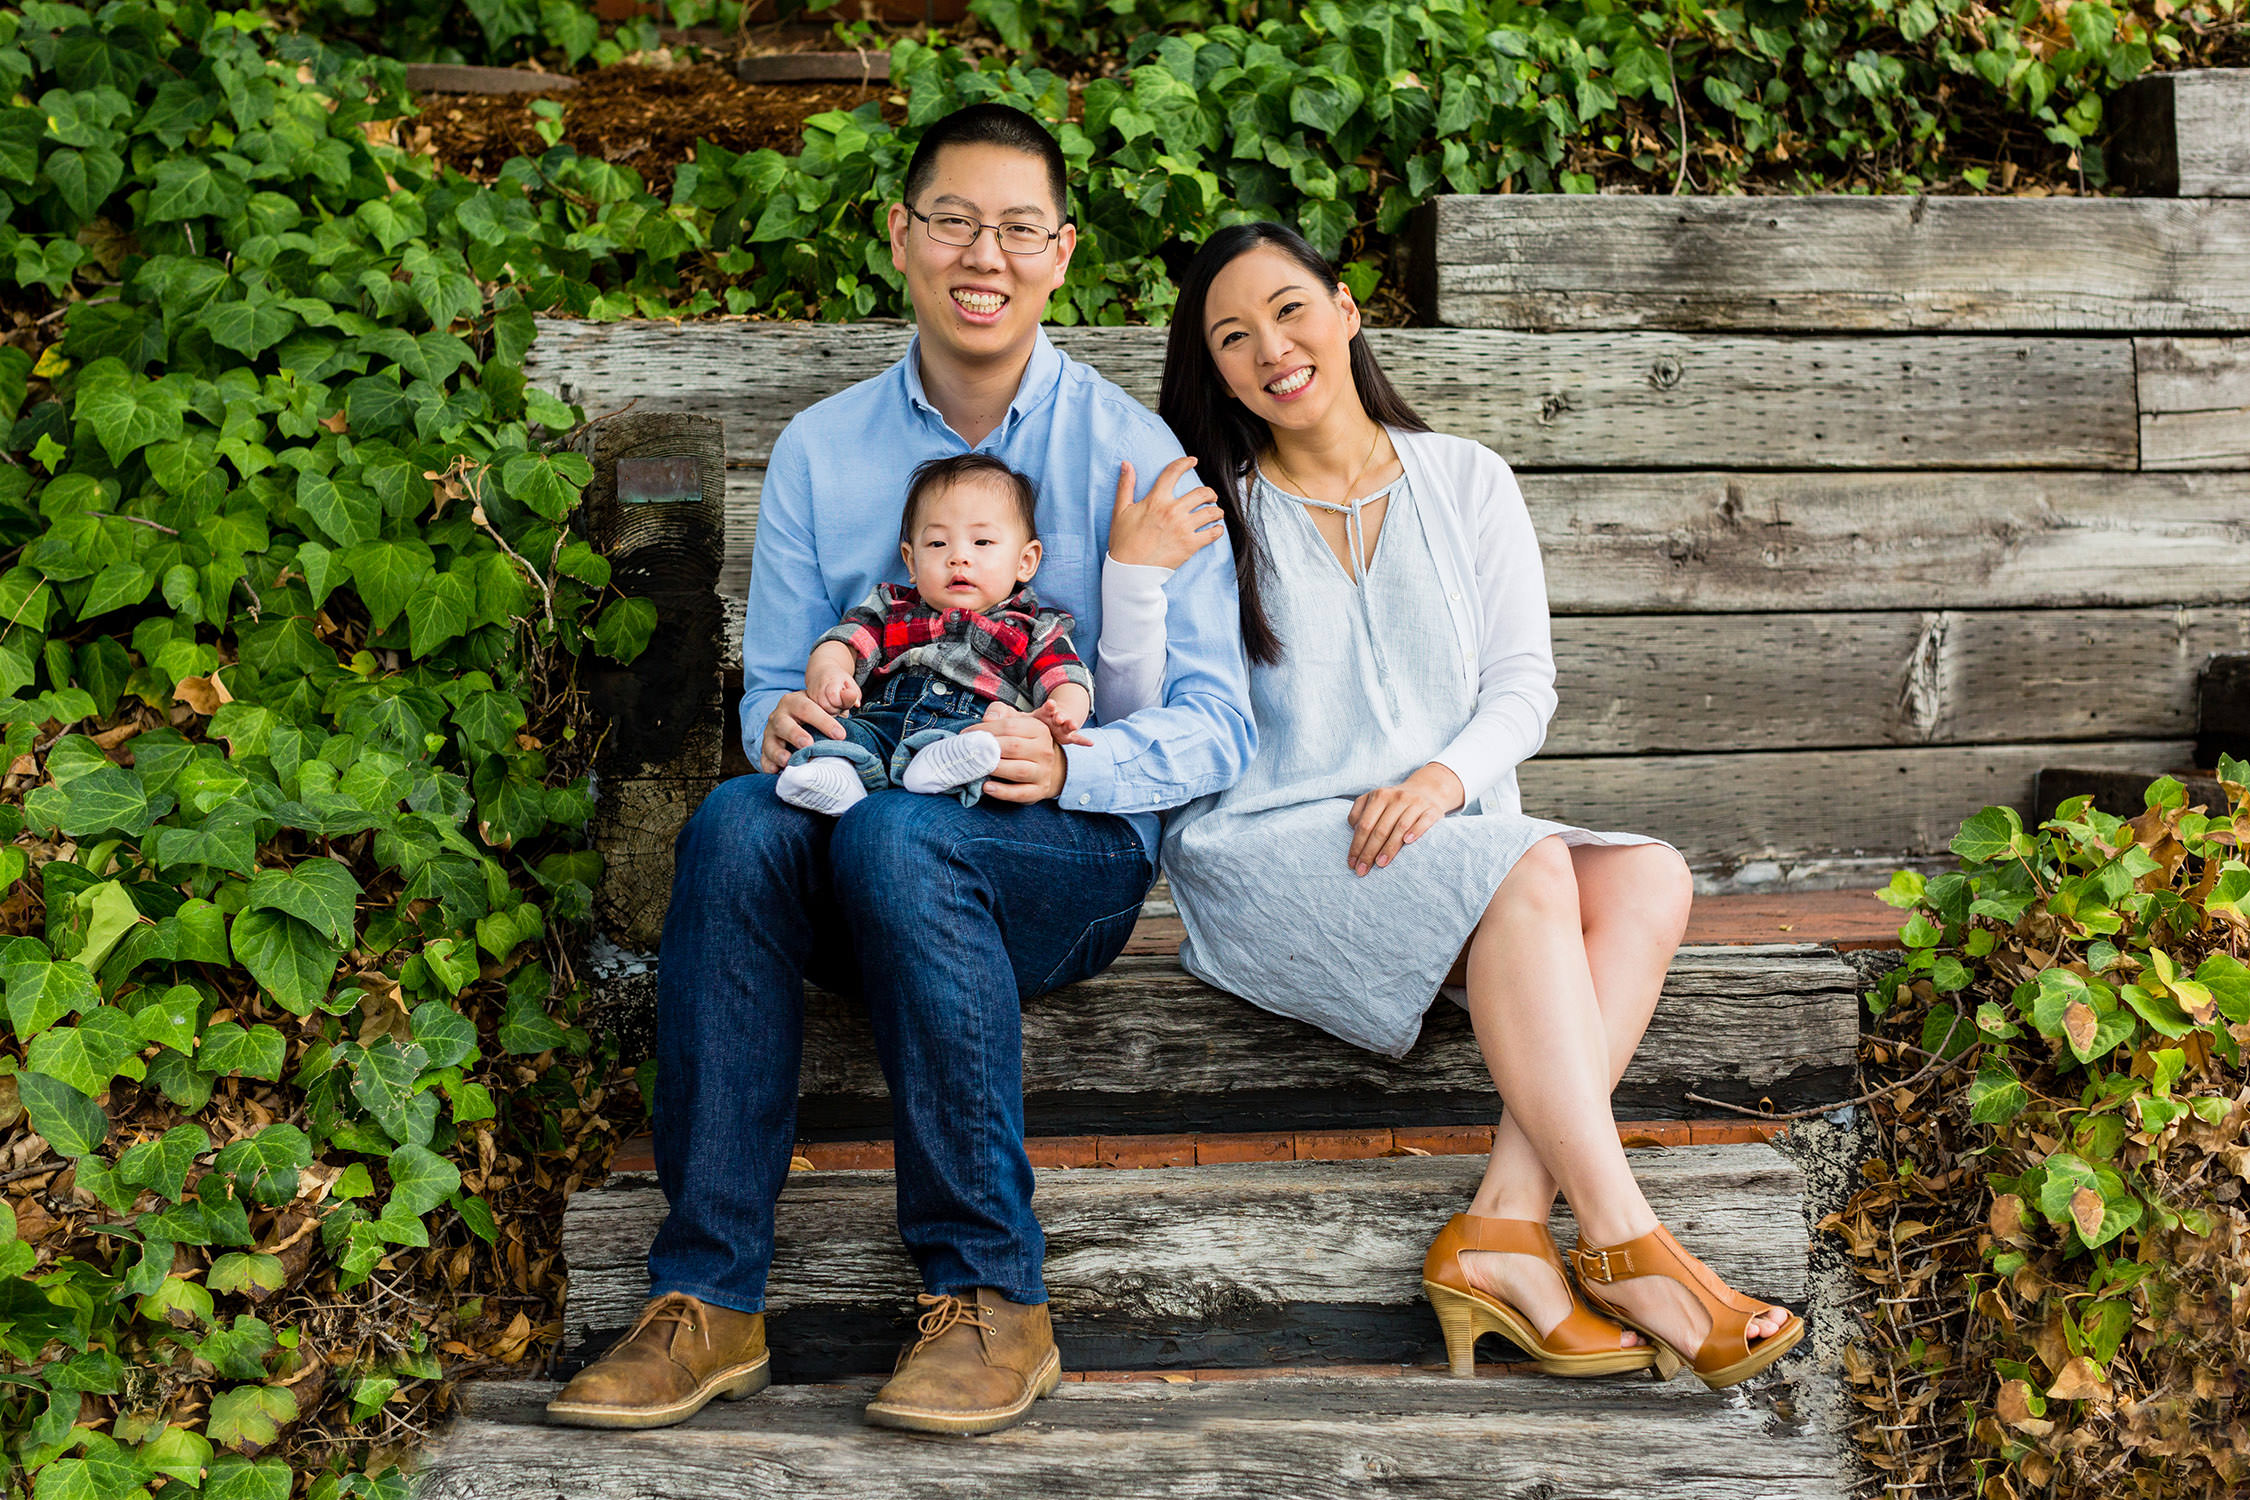 Family portraits session in Glendora, California